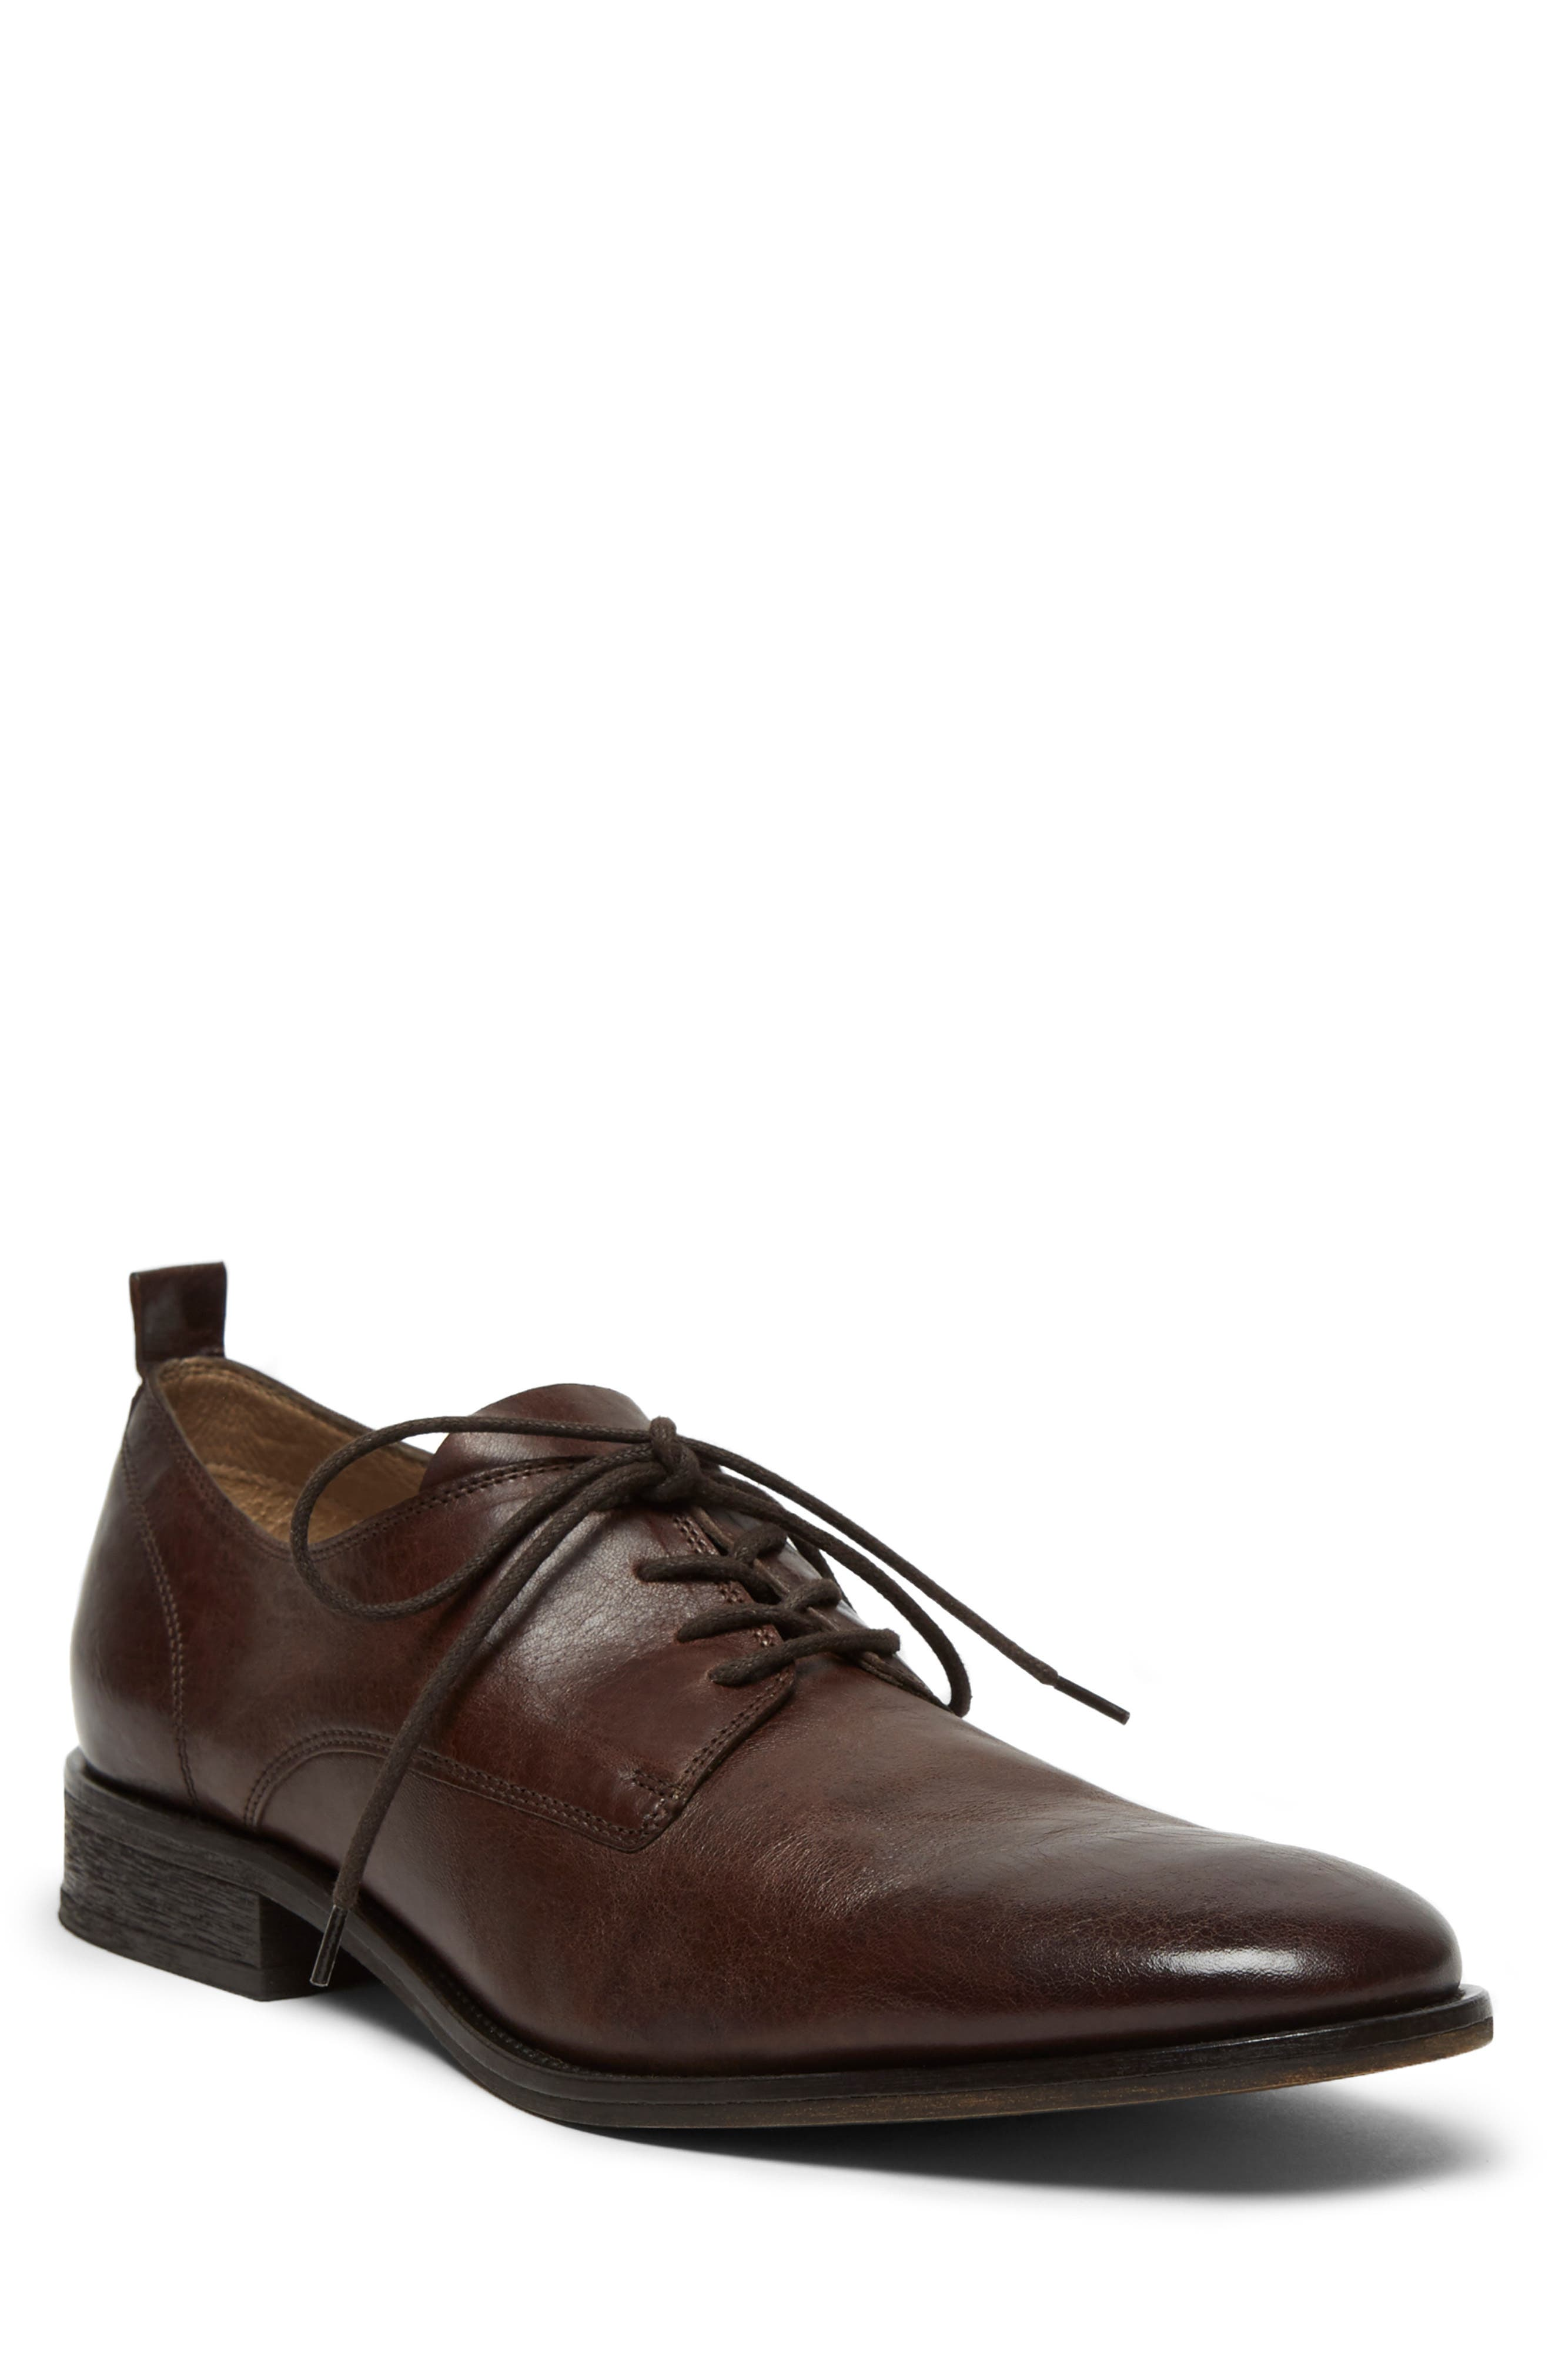 Indio Plain Toe Derby,                         Main,                         color, BROWN LEATHER